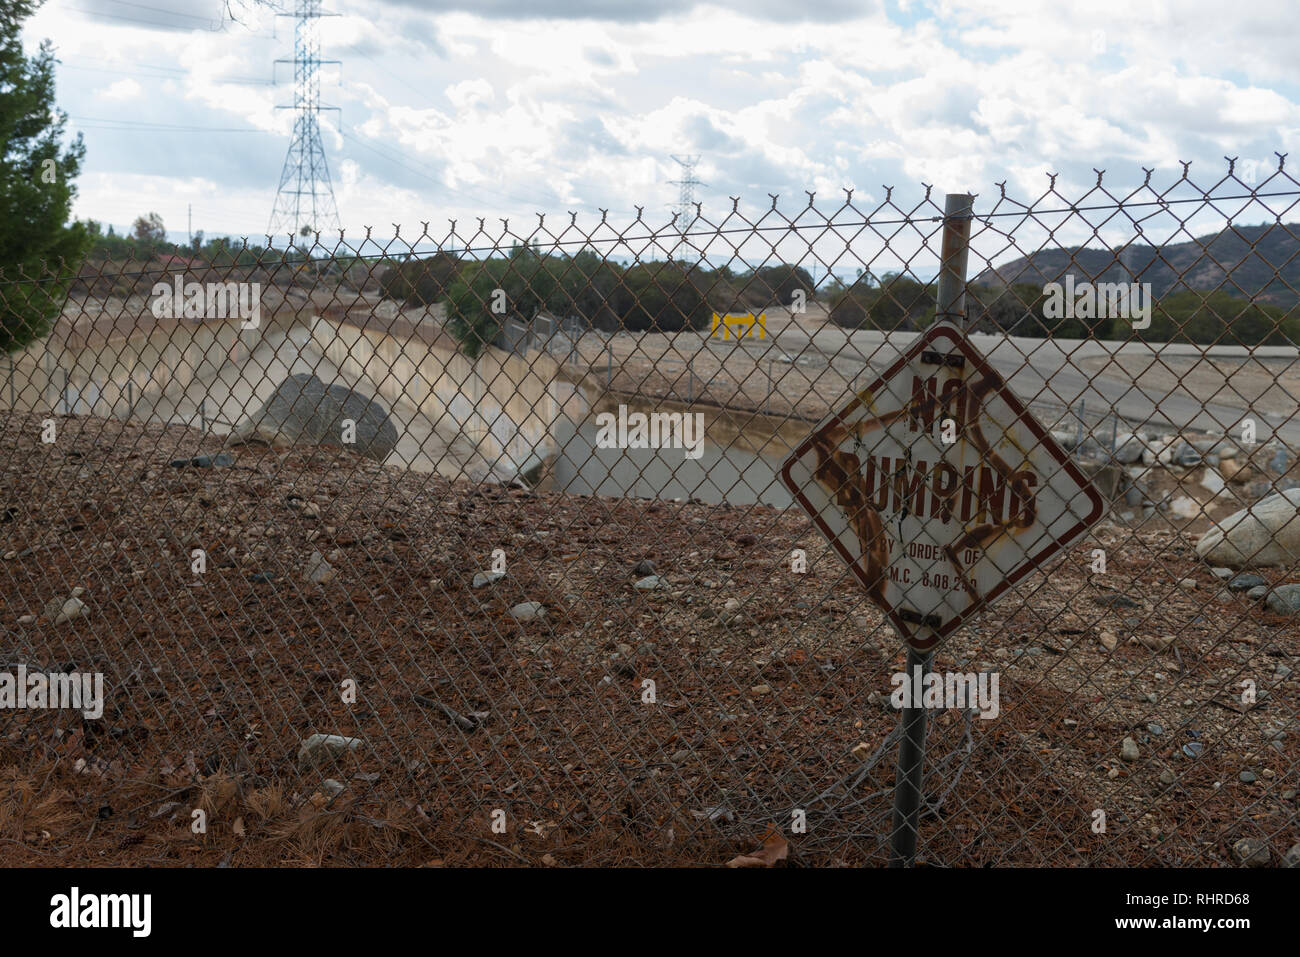 Rusty no dumping sign on fence in front of storm channels in Claremont California - Stock Image